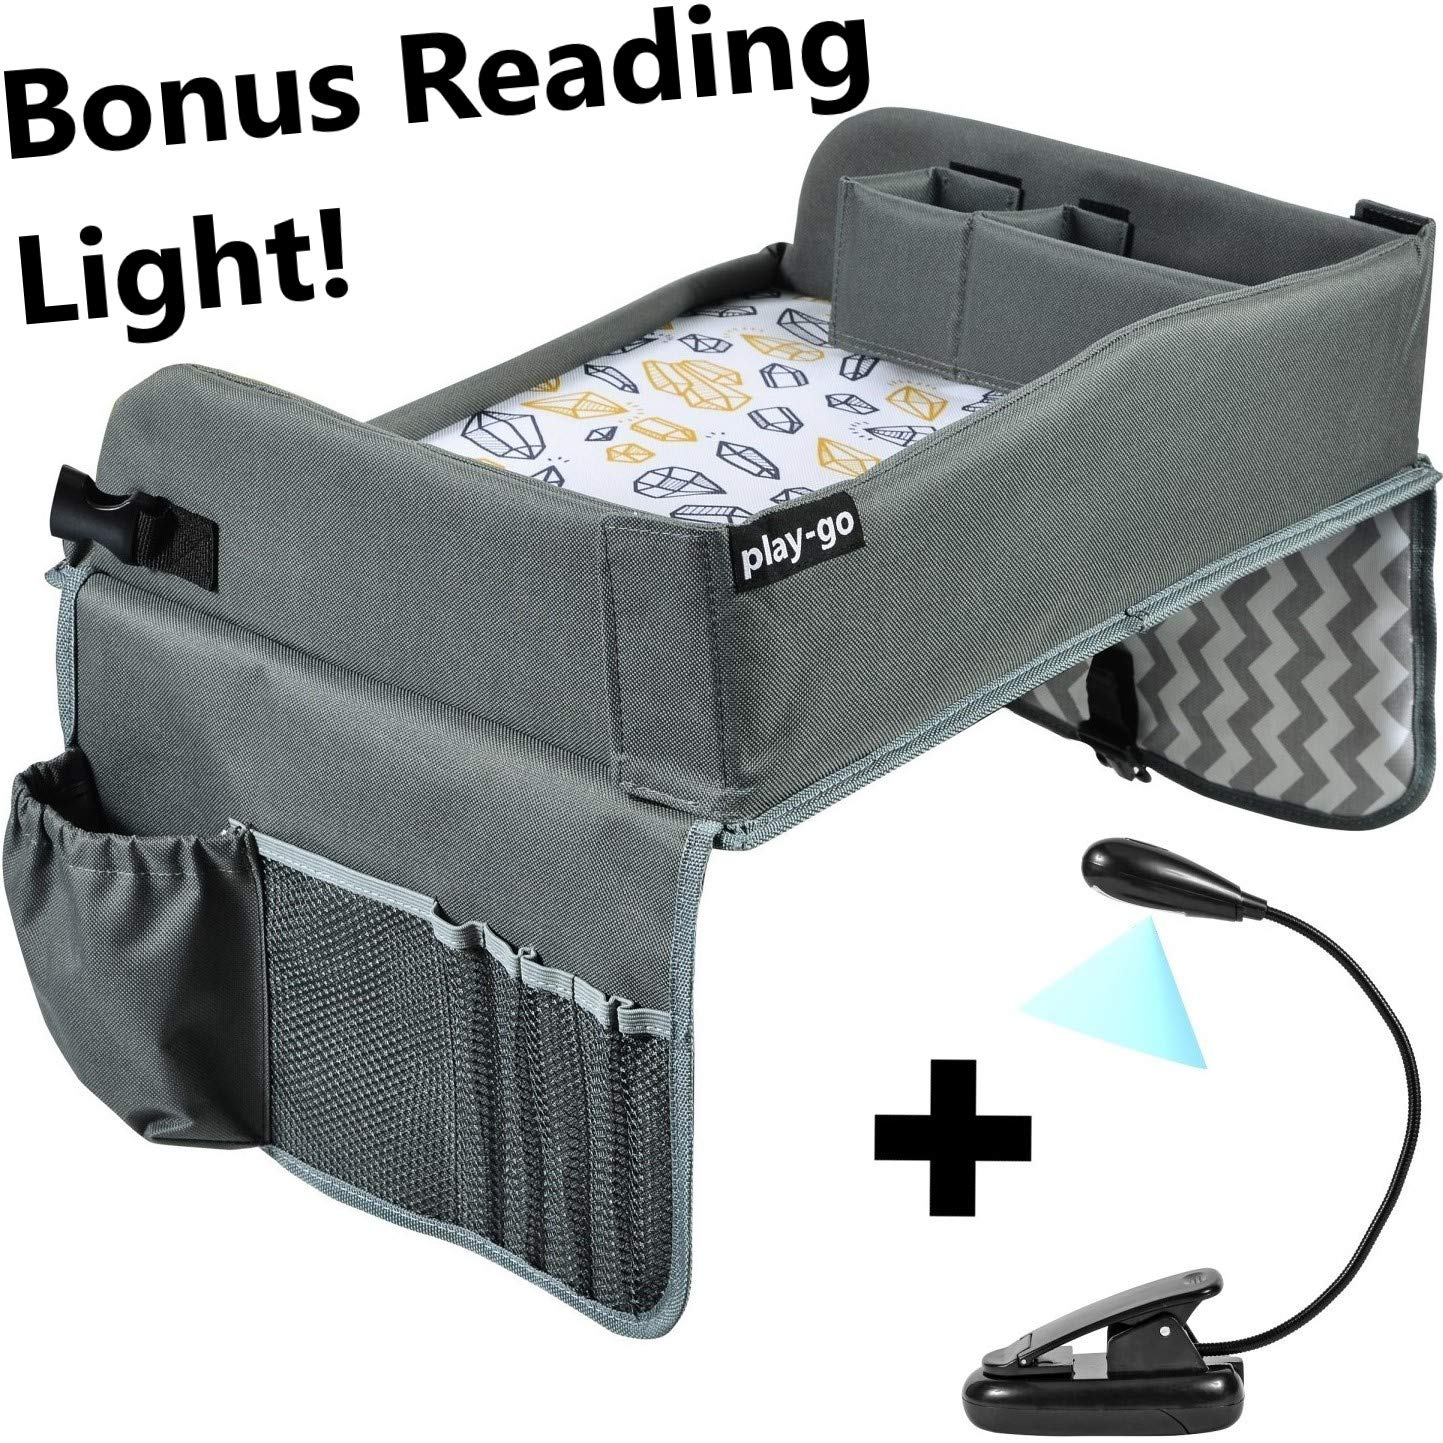 Kids Travel Tray Bonus Reading Light Clip | Premium Car Seat Activity Tray | Waterproof, Food & Snack Tray | Smartphone/Tablet/Cup Holder | Back Seat Organizer | Padded/Portable by play-go